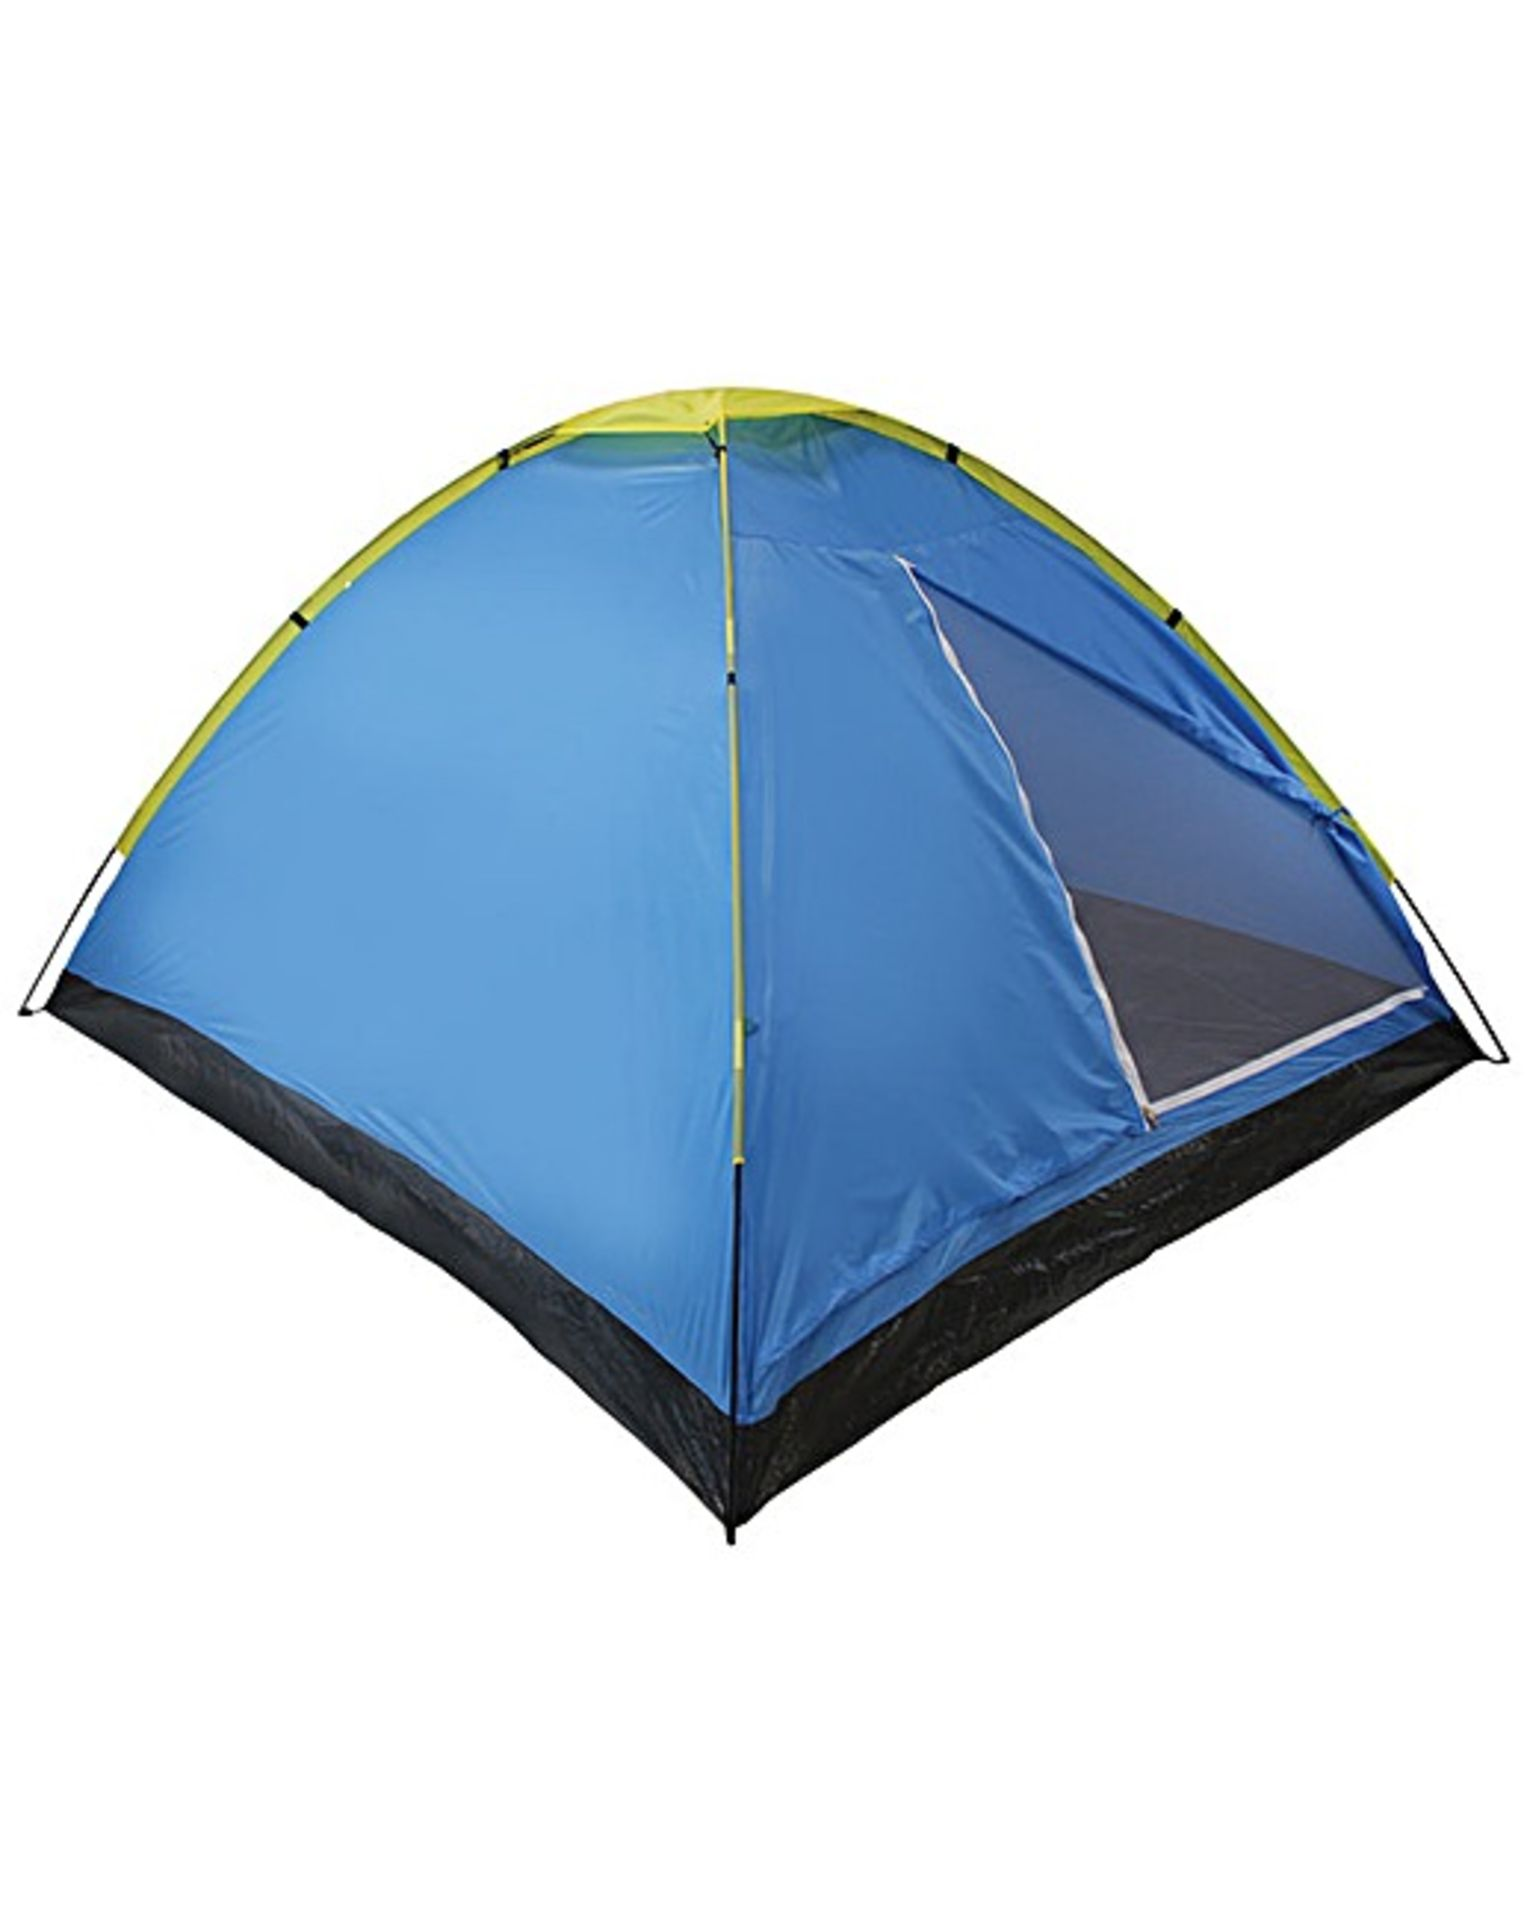 Lot 30256 - V Brand New Two Person Dome Tent With Fibreglass Poles And Taped Seams RRP21.00 (JD Williams)